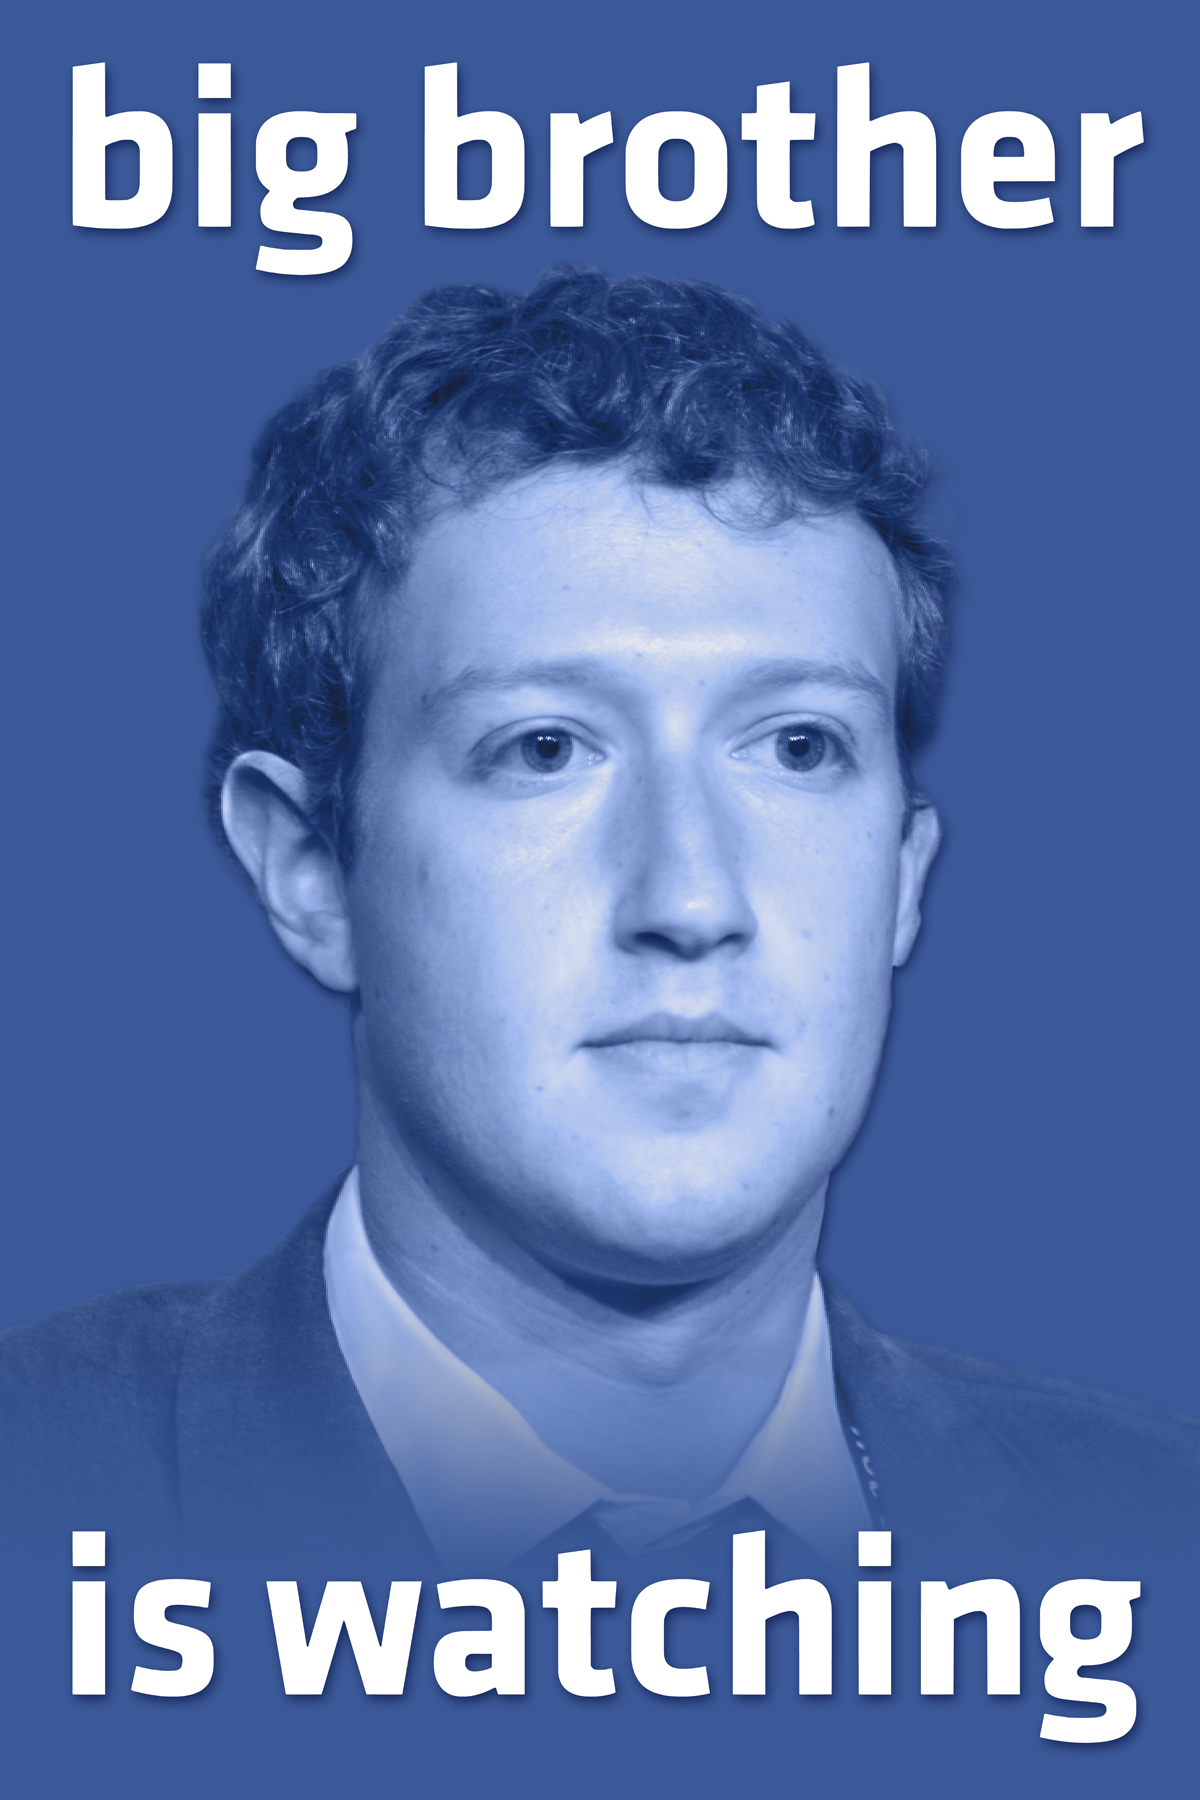 facebook-big-brother-is-watching